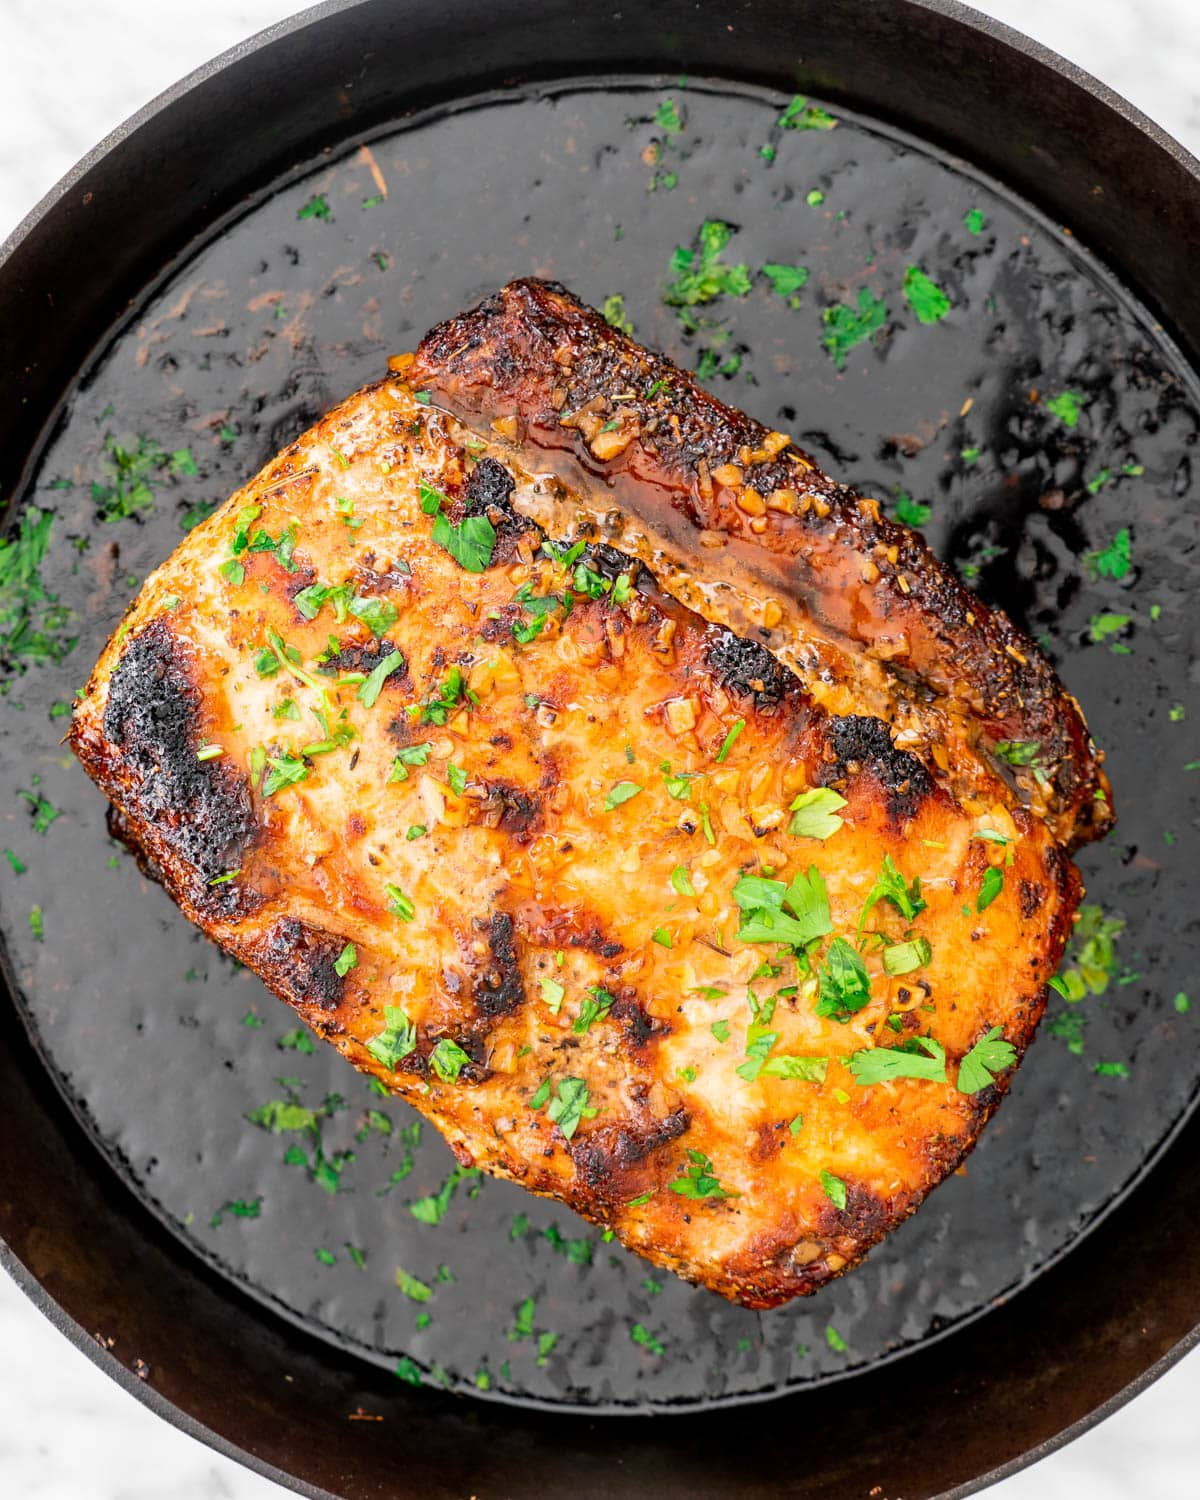 overhead shot of a pork loin roast in a skillet glazed with a honey garlic sauce